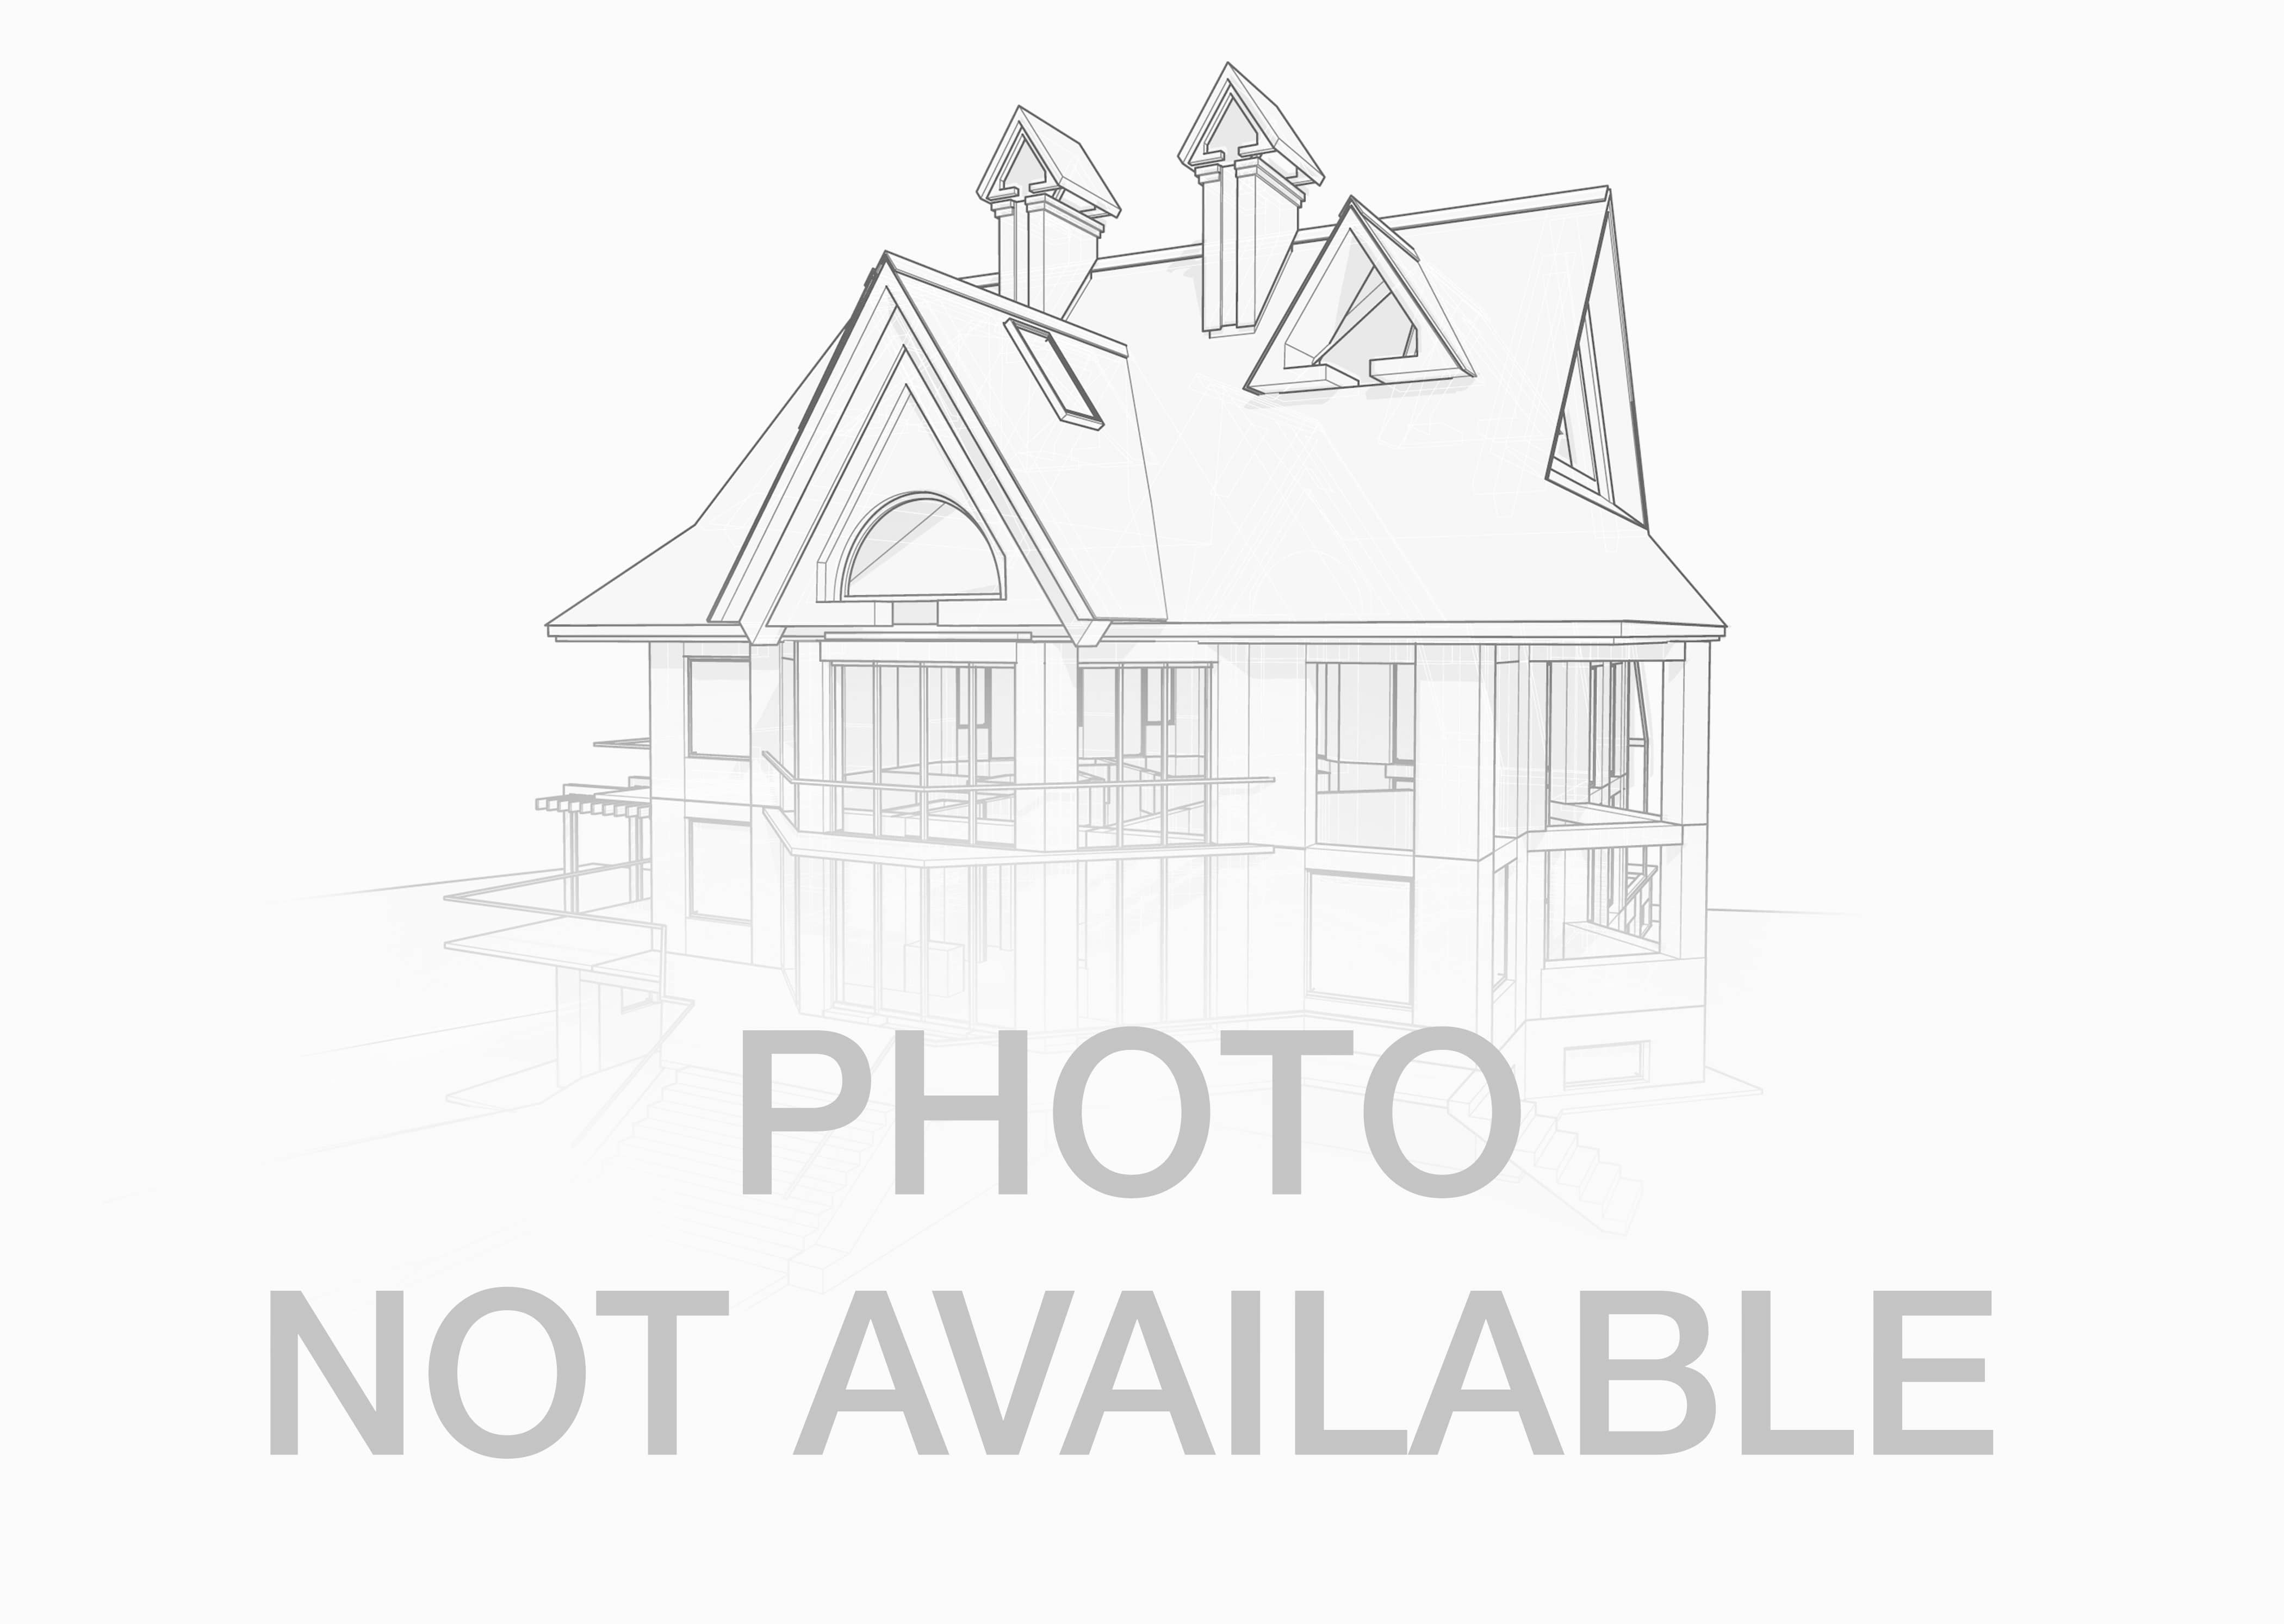 Beckley wv escorts listings Find Real Estate, Homes for Sale, Apartments & Houses for Rent - ®